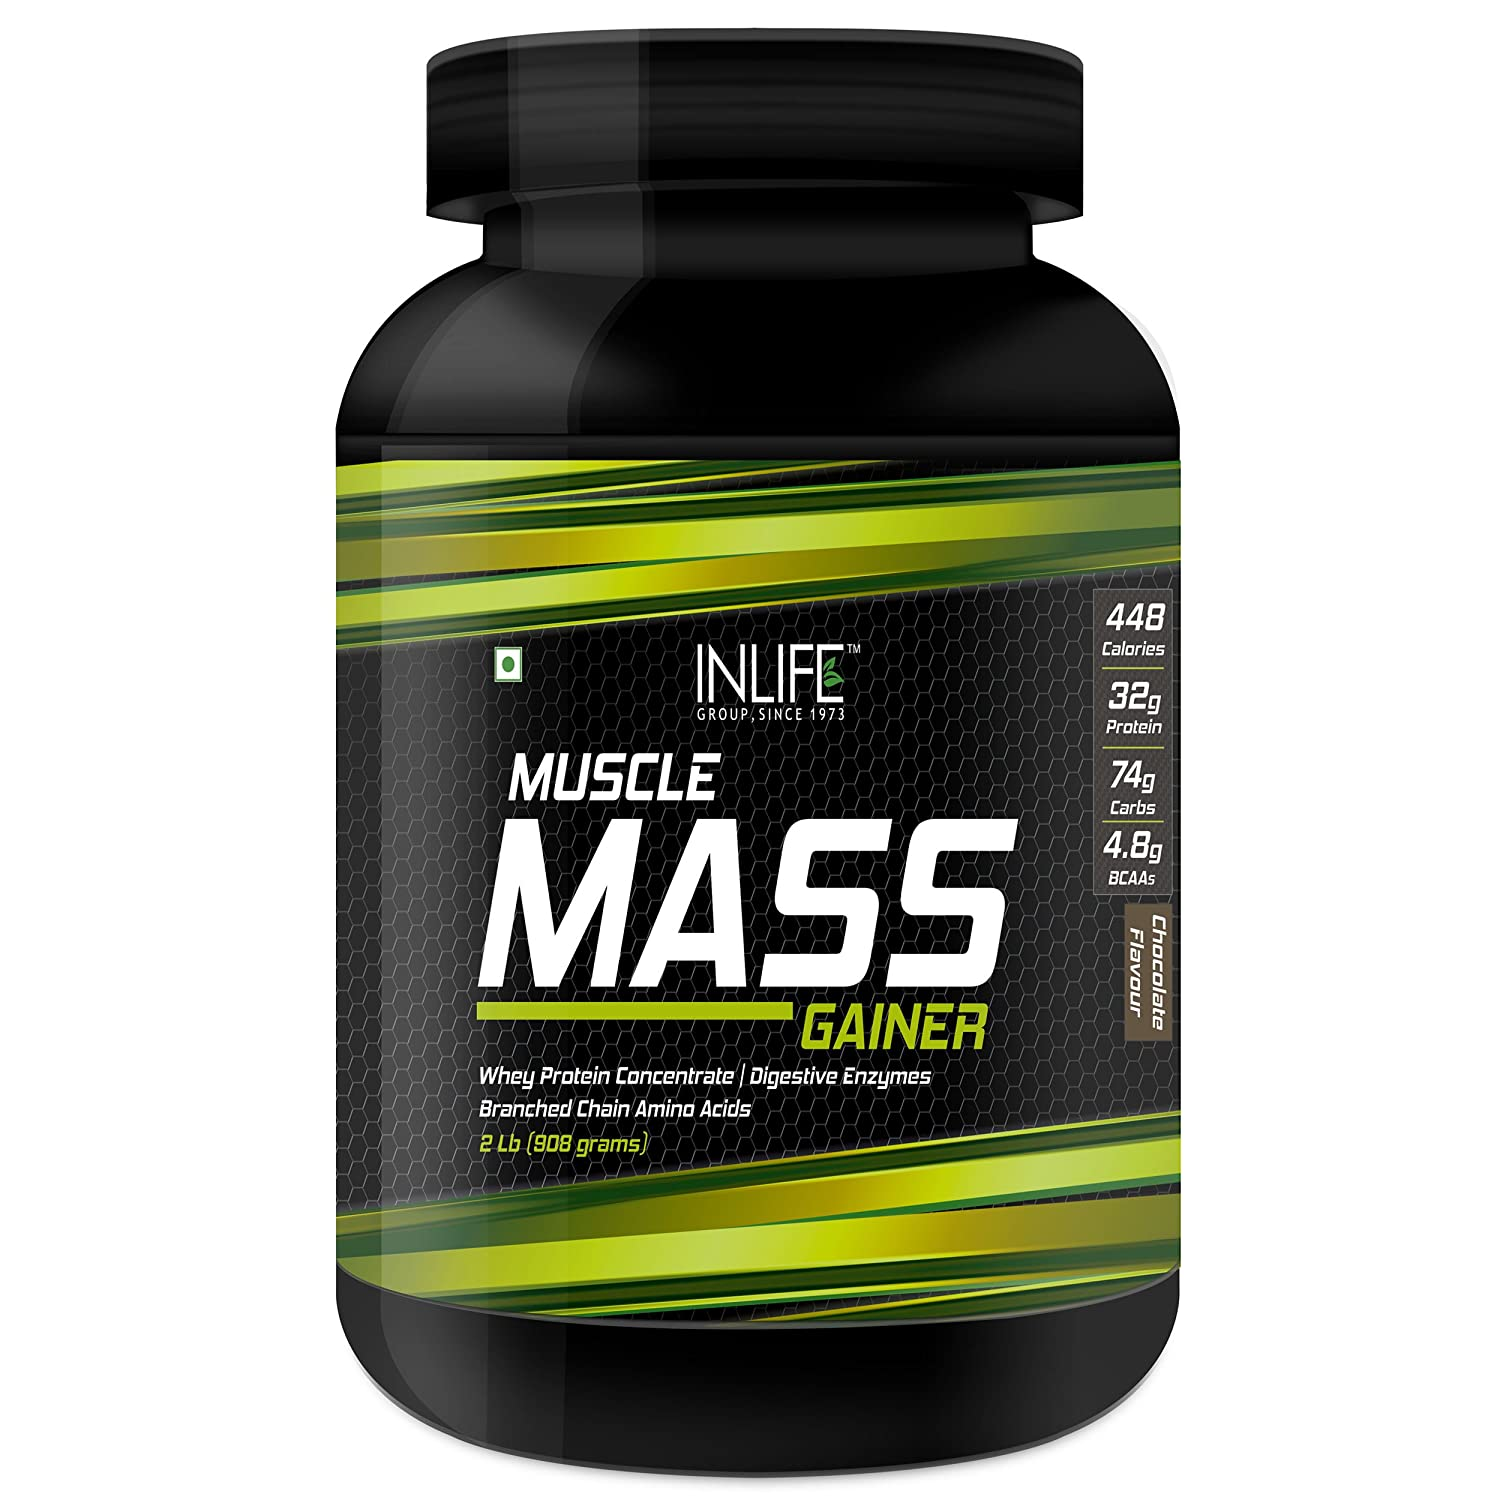 fc83a28bdf6 Amazon.com  INLIFE Muscle Mass Gainer with Whey Protein Powder Bodybuilding  Supplement (908 grams 2 lb)  Health   Personal Care